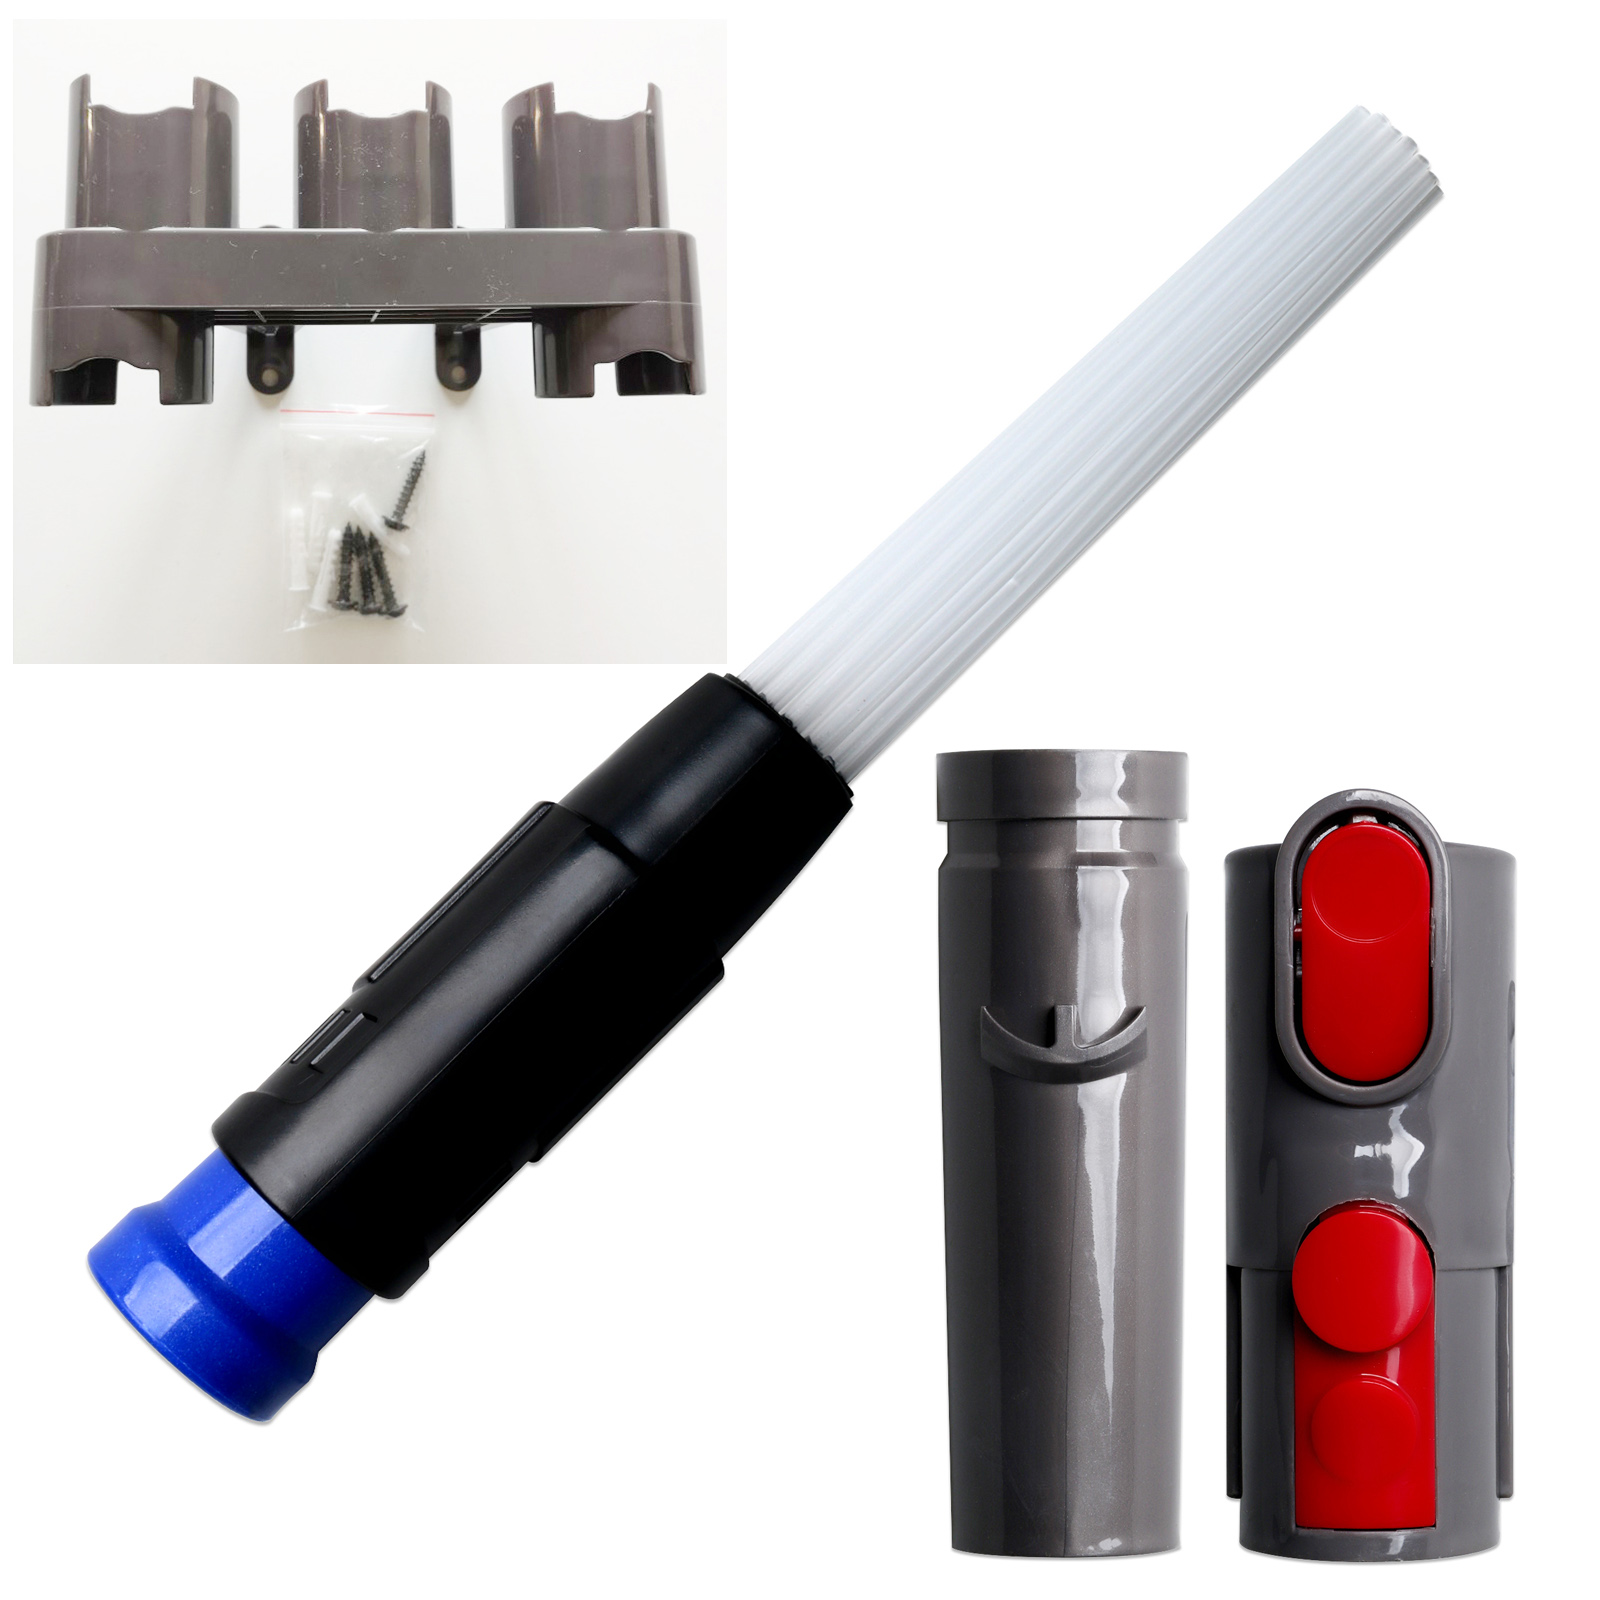 Storage Bracket Holder Stand for Dyson V8 V10 V7 Vacuum Cleaner with Cleaning Tool Attachment Brush Adaptor Set Accessories